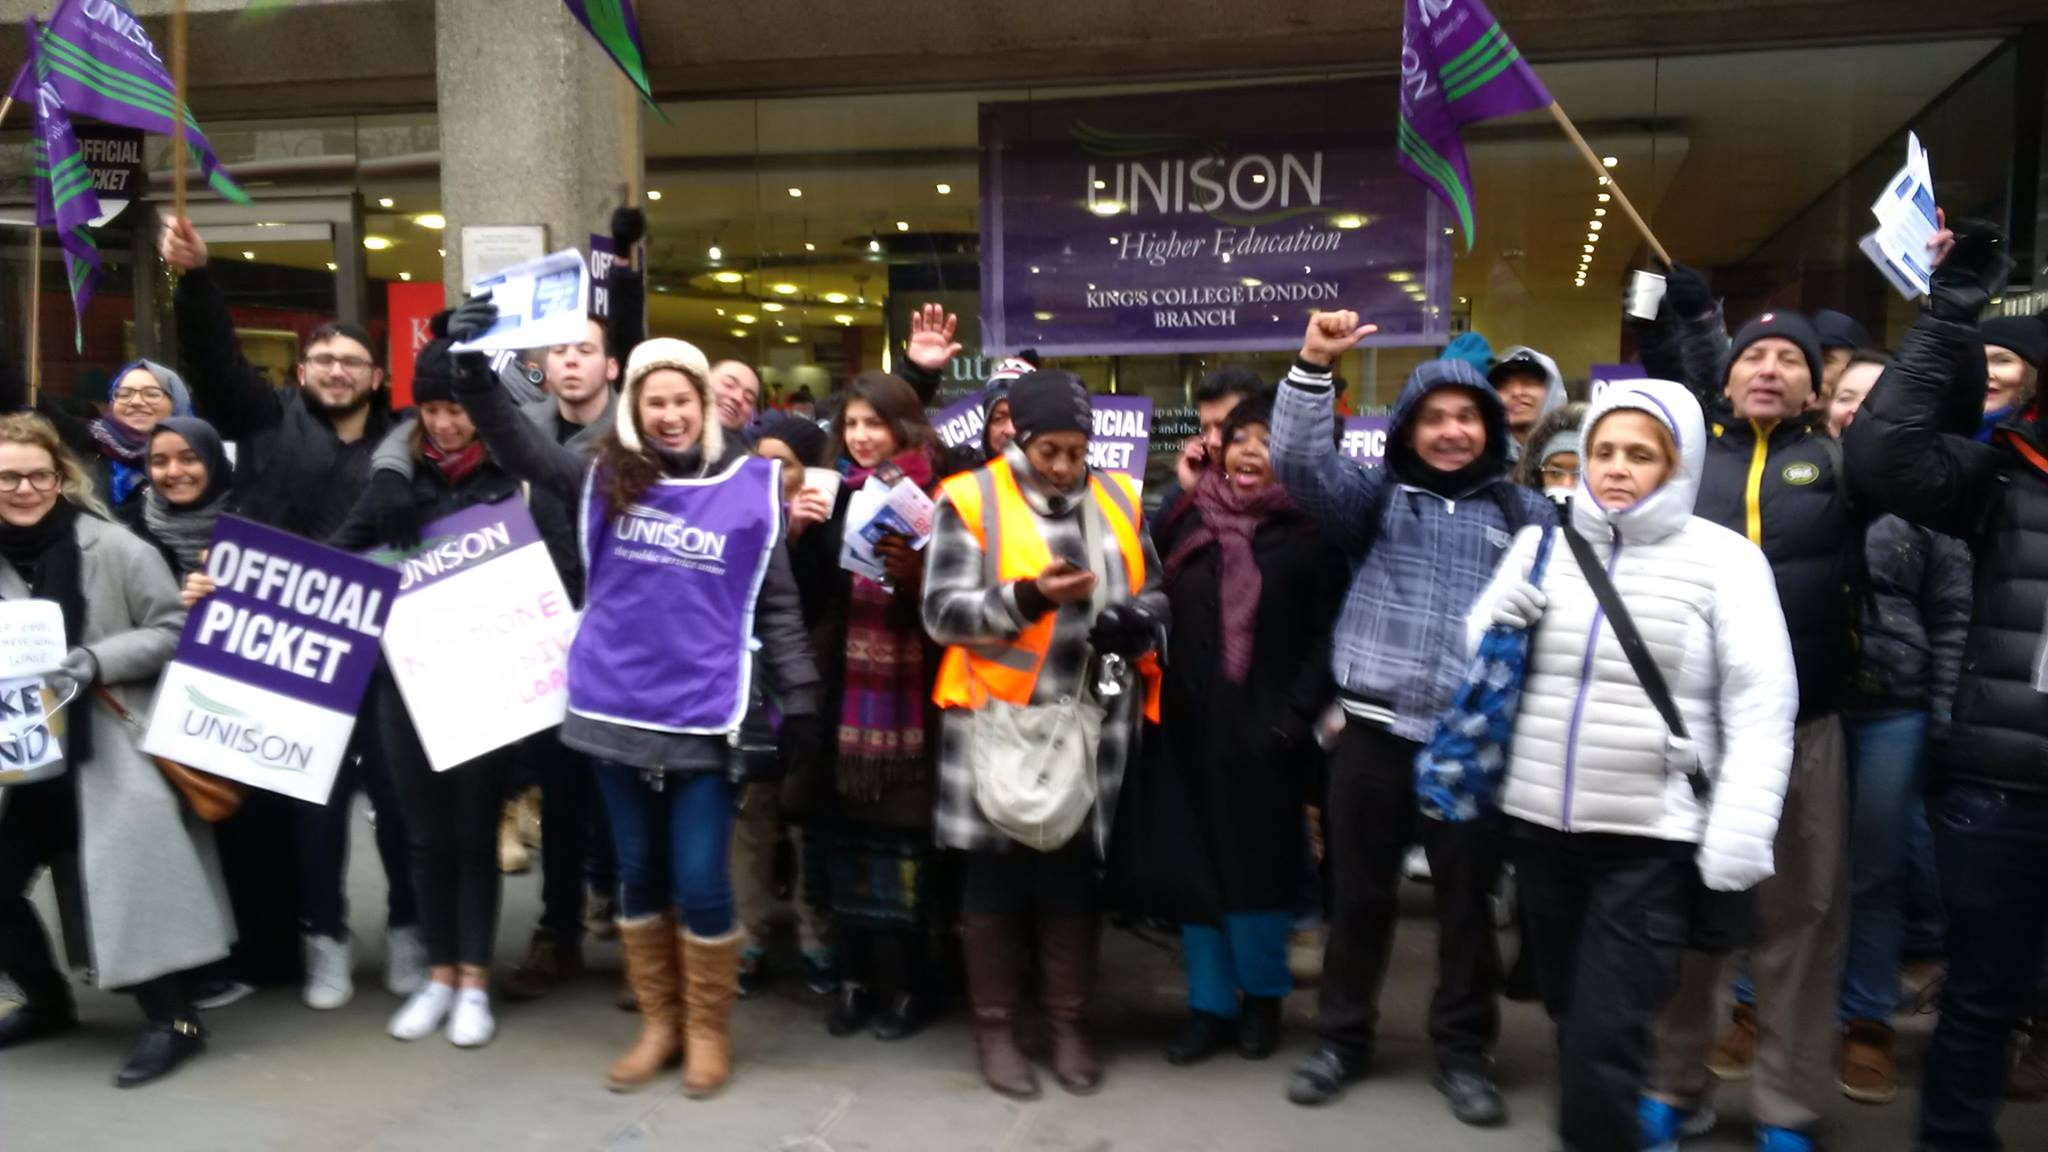 KCL Justice For Cleaners: the fight goes on!